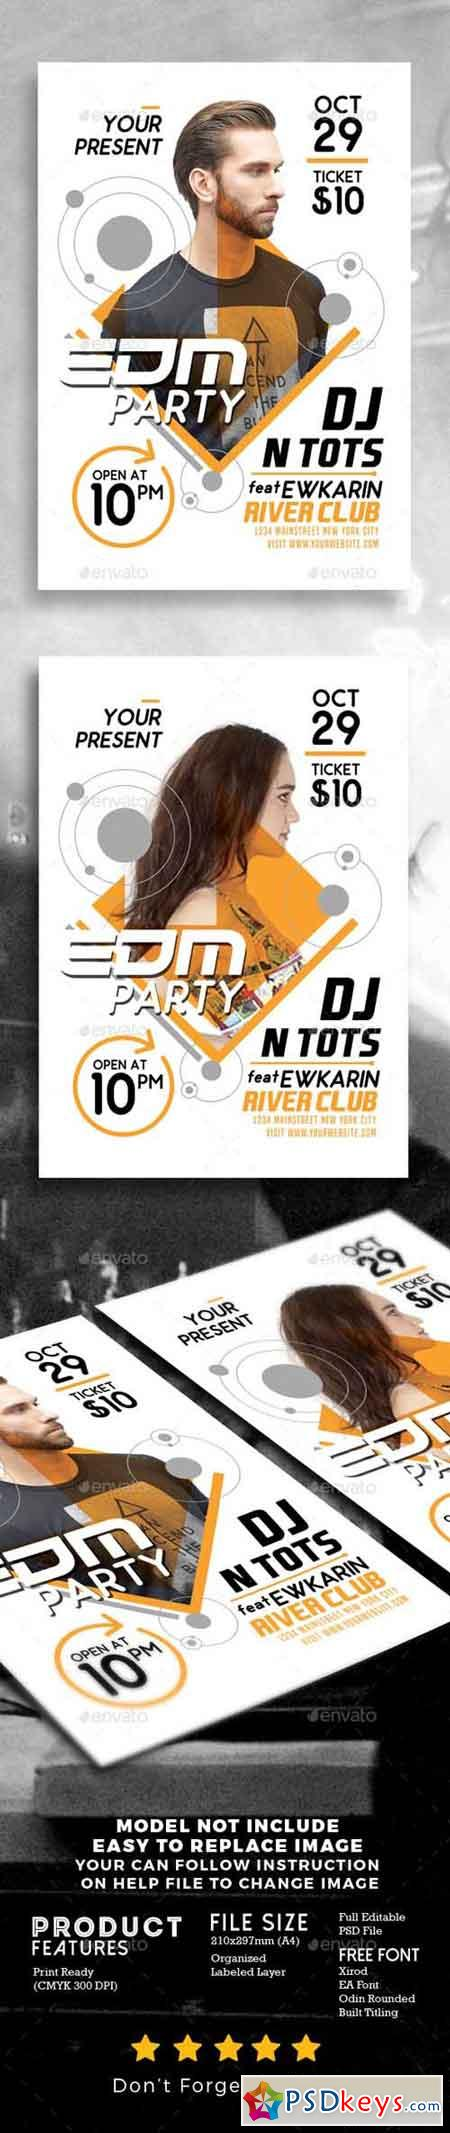 Edm party flyer template 19223204 free download for Html edm template